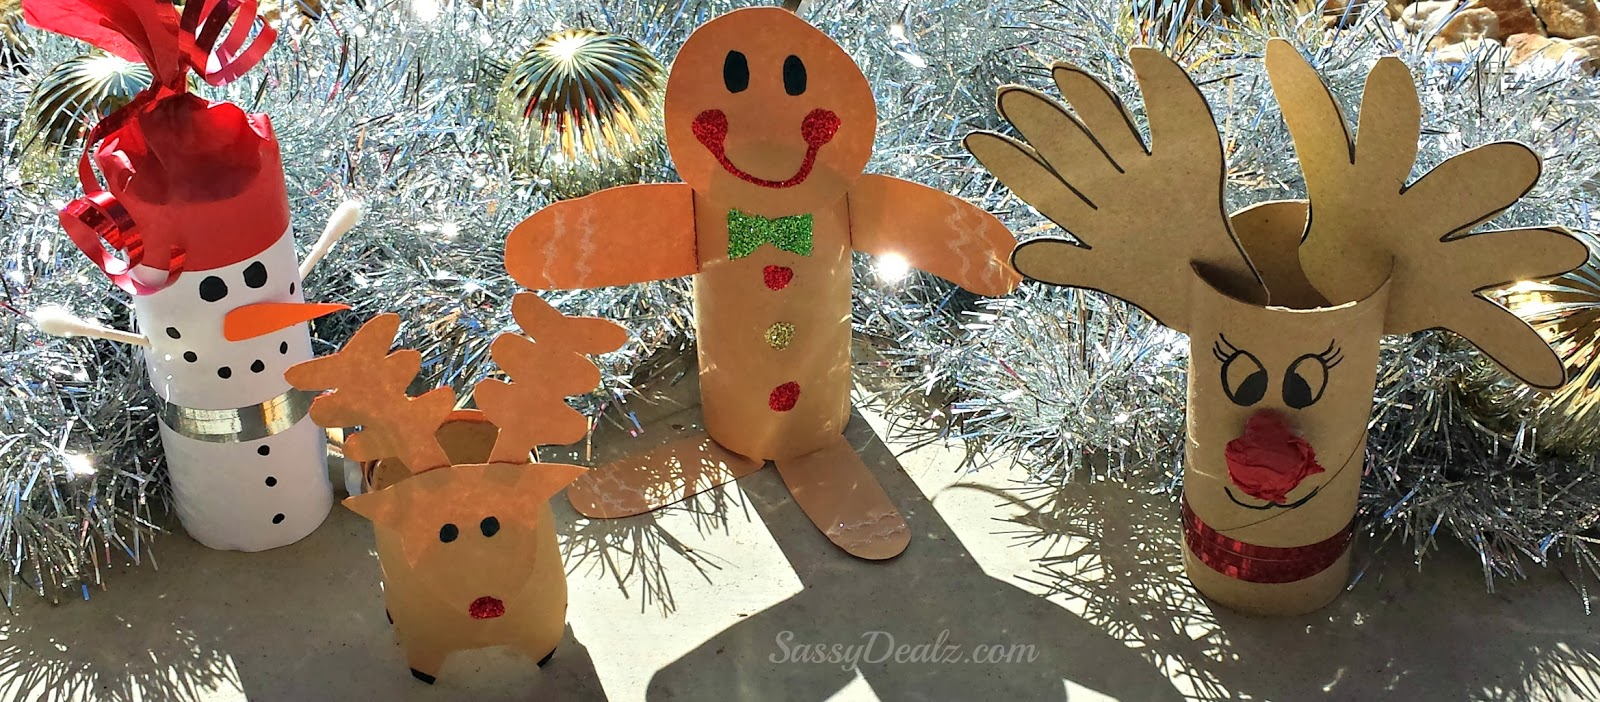 DIY Christmas Toilet Paper Roll Craft Ideas For Kids Christmas Paper Craft Ideas For Toddlers